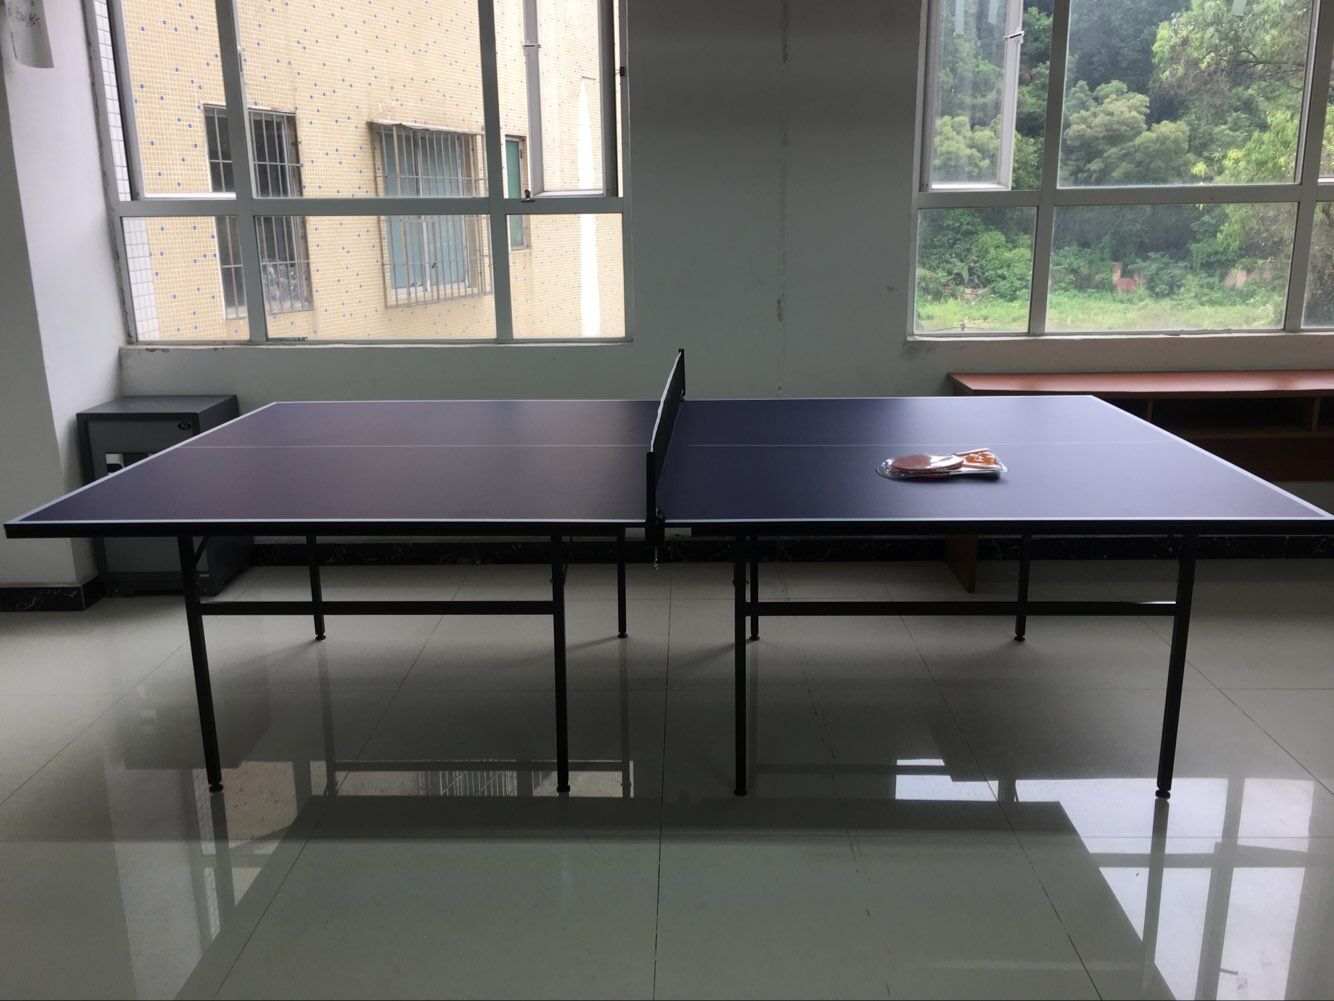 Panana Professional Indoor Sport Game Table Tennis Ping Pong Table Full Size